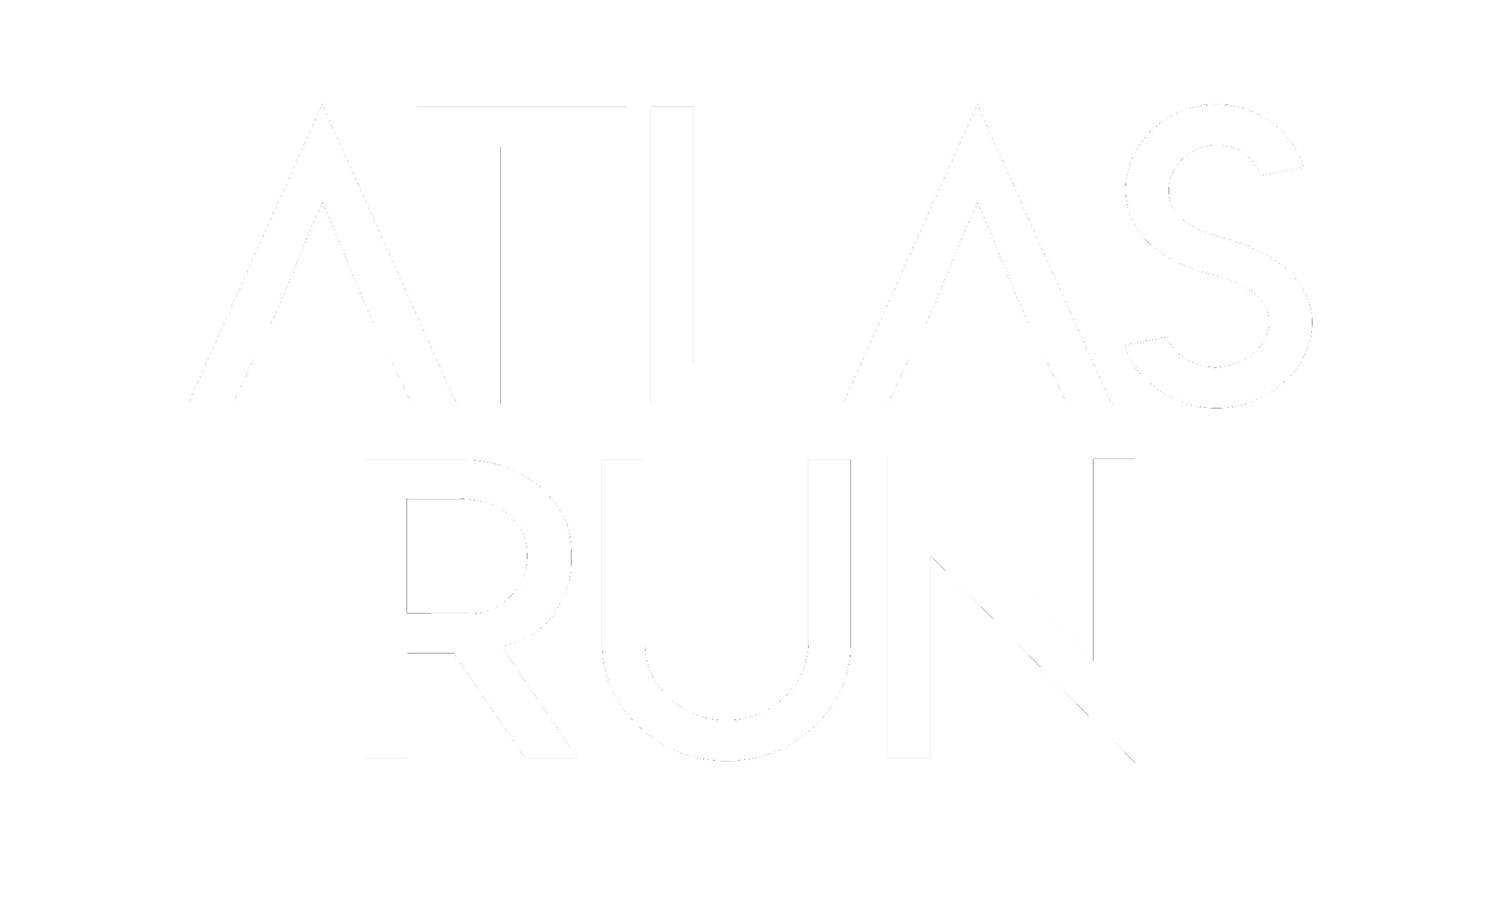 Atlas Run